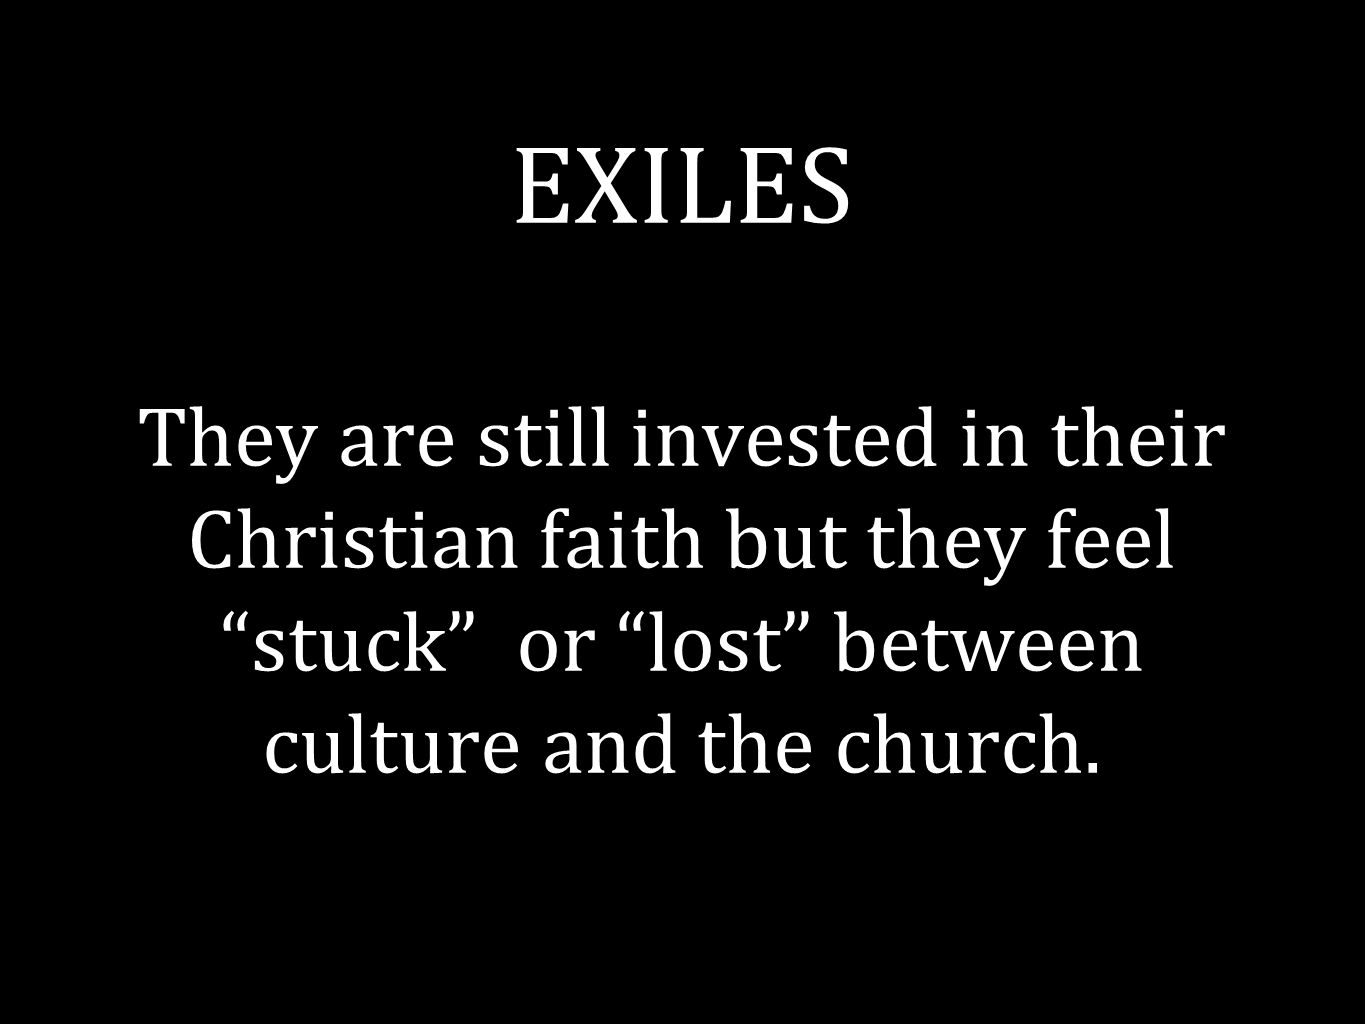 EXILES They are still invested in their Christian faith but they feel stuck or lost between culture and the church.